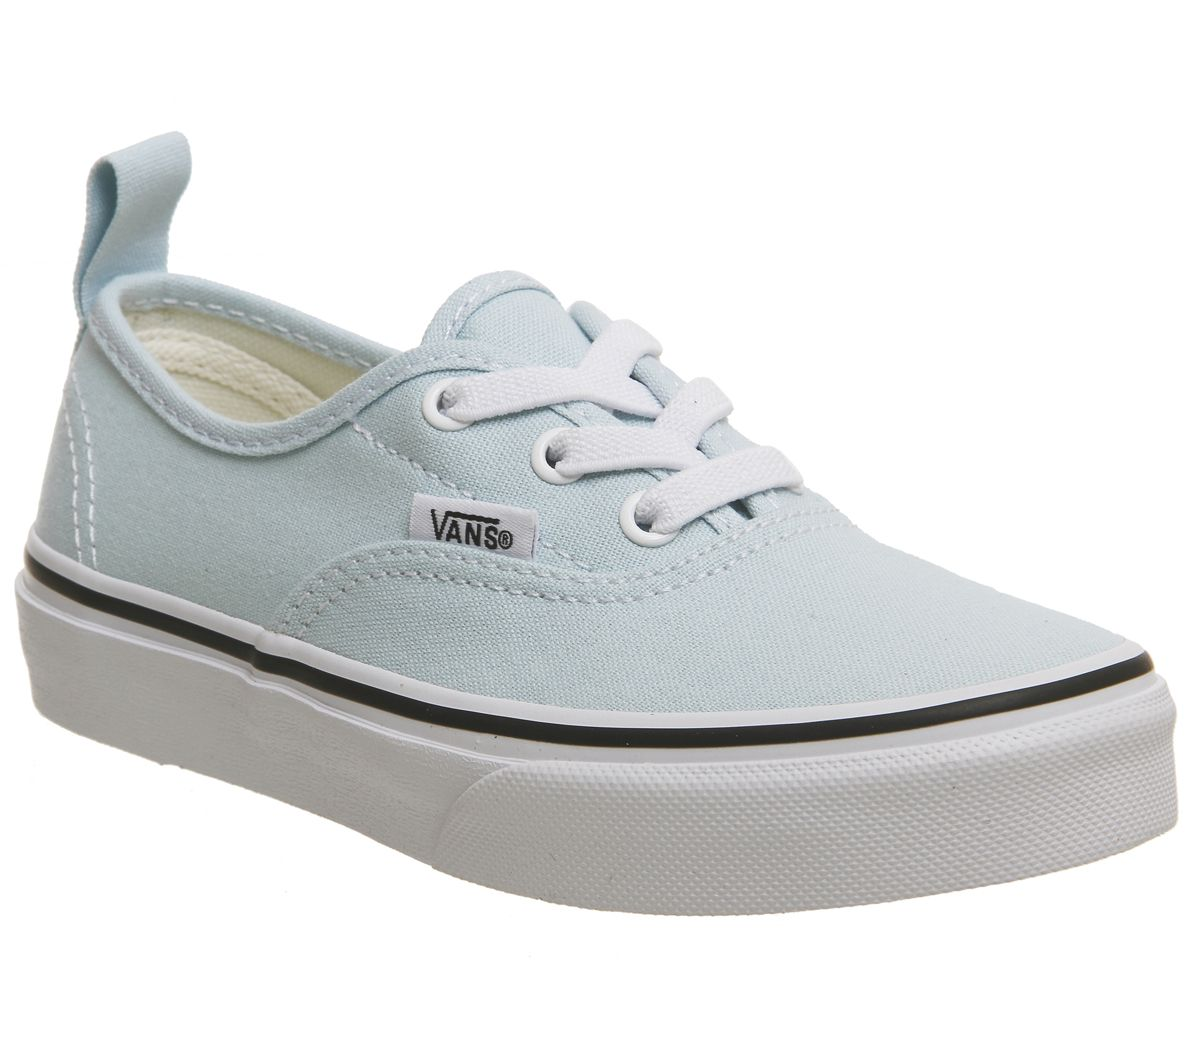 3c3519e0da23ad Vans Authentic Kids Baby Blue True White - Unisex